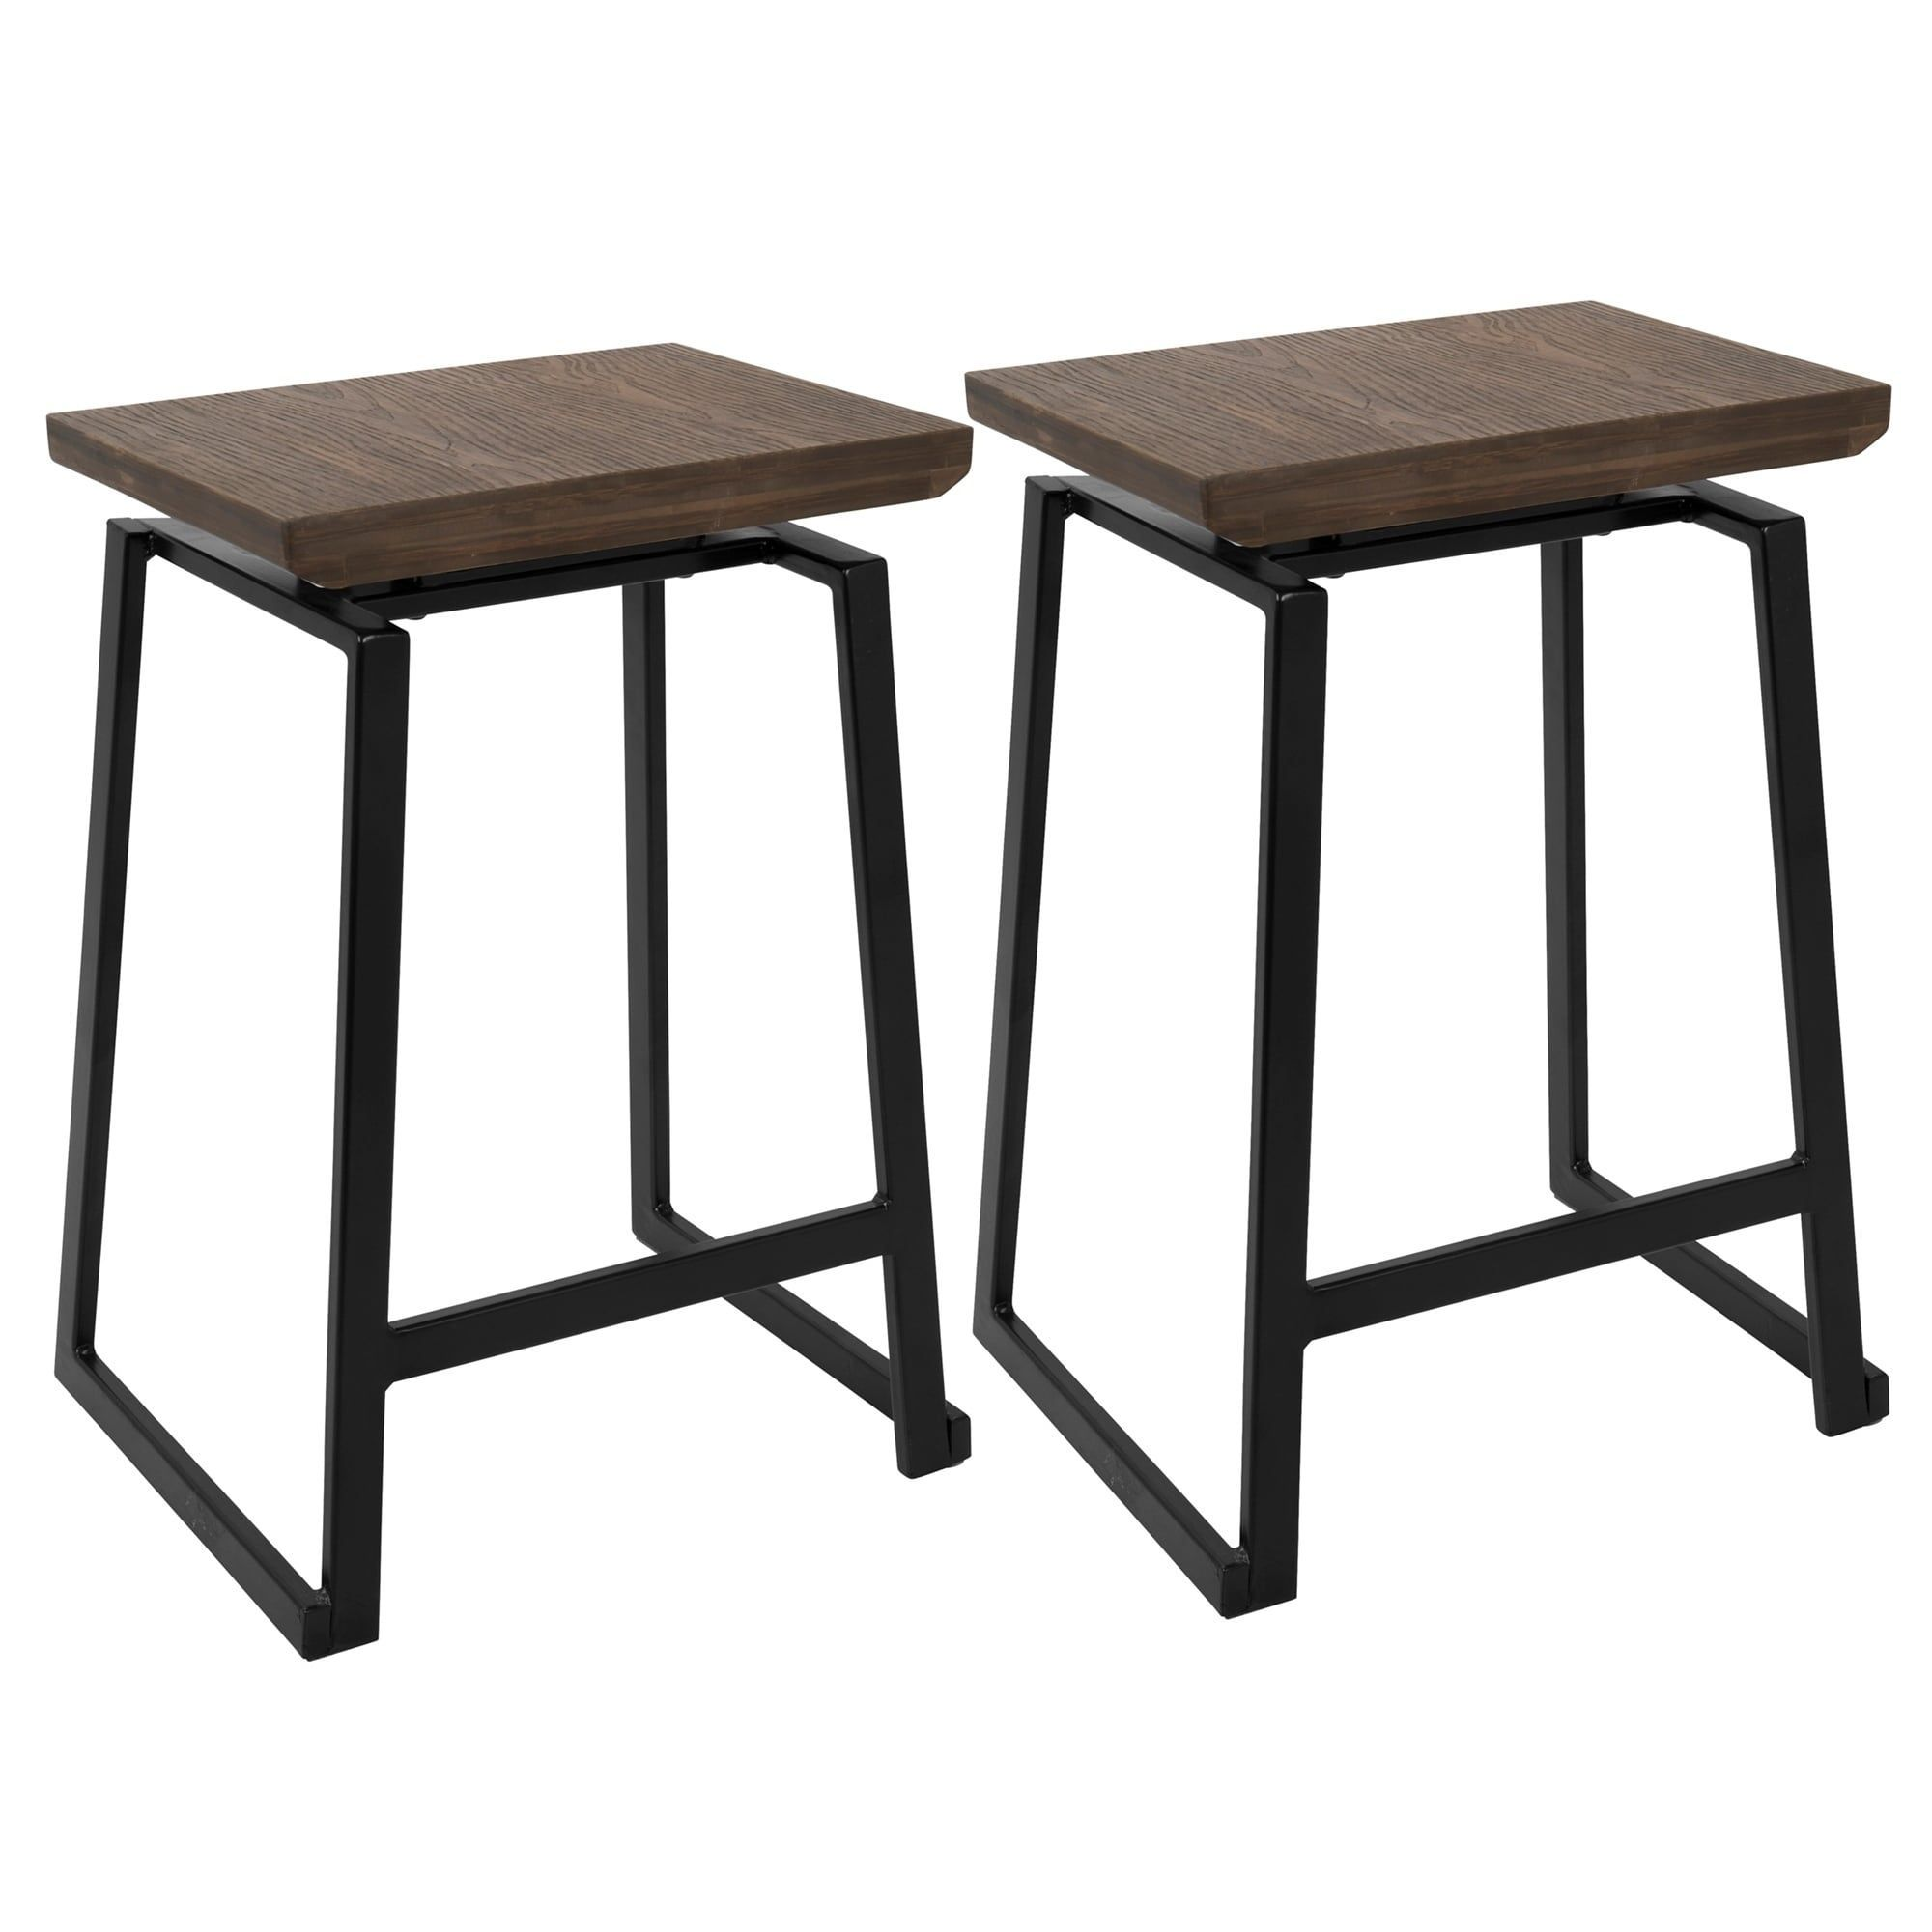 LumiSource Geo Industrial Metal and Wood Counter Stool (Set of 2), Black